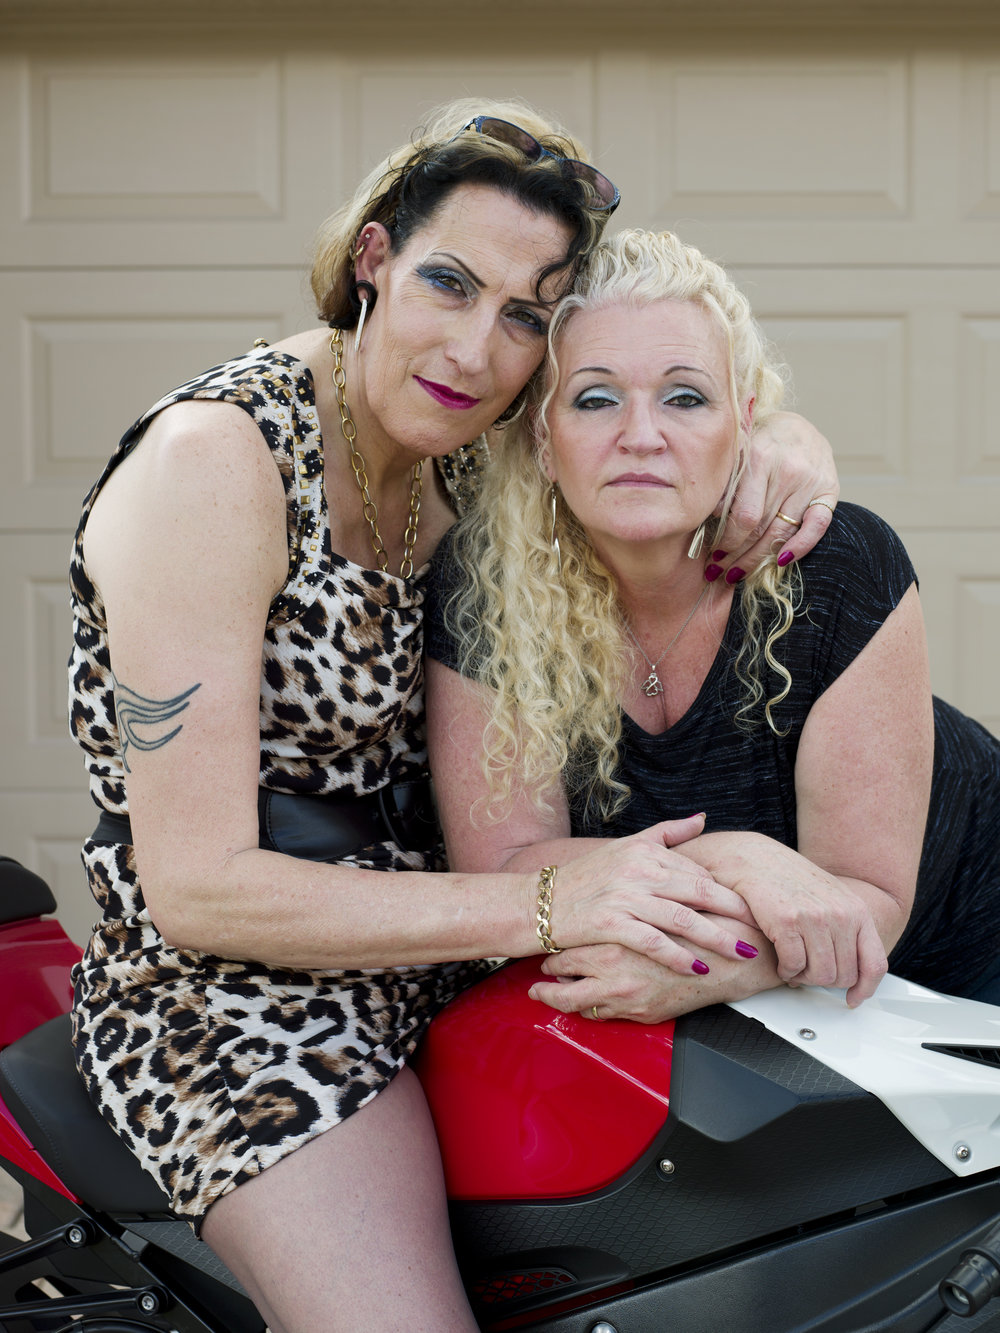 SueZie, 51, and Cheryl, 55, Valrico, FL, 2015